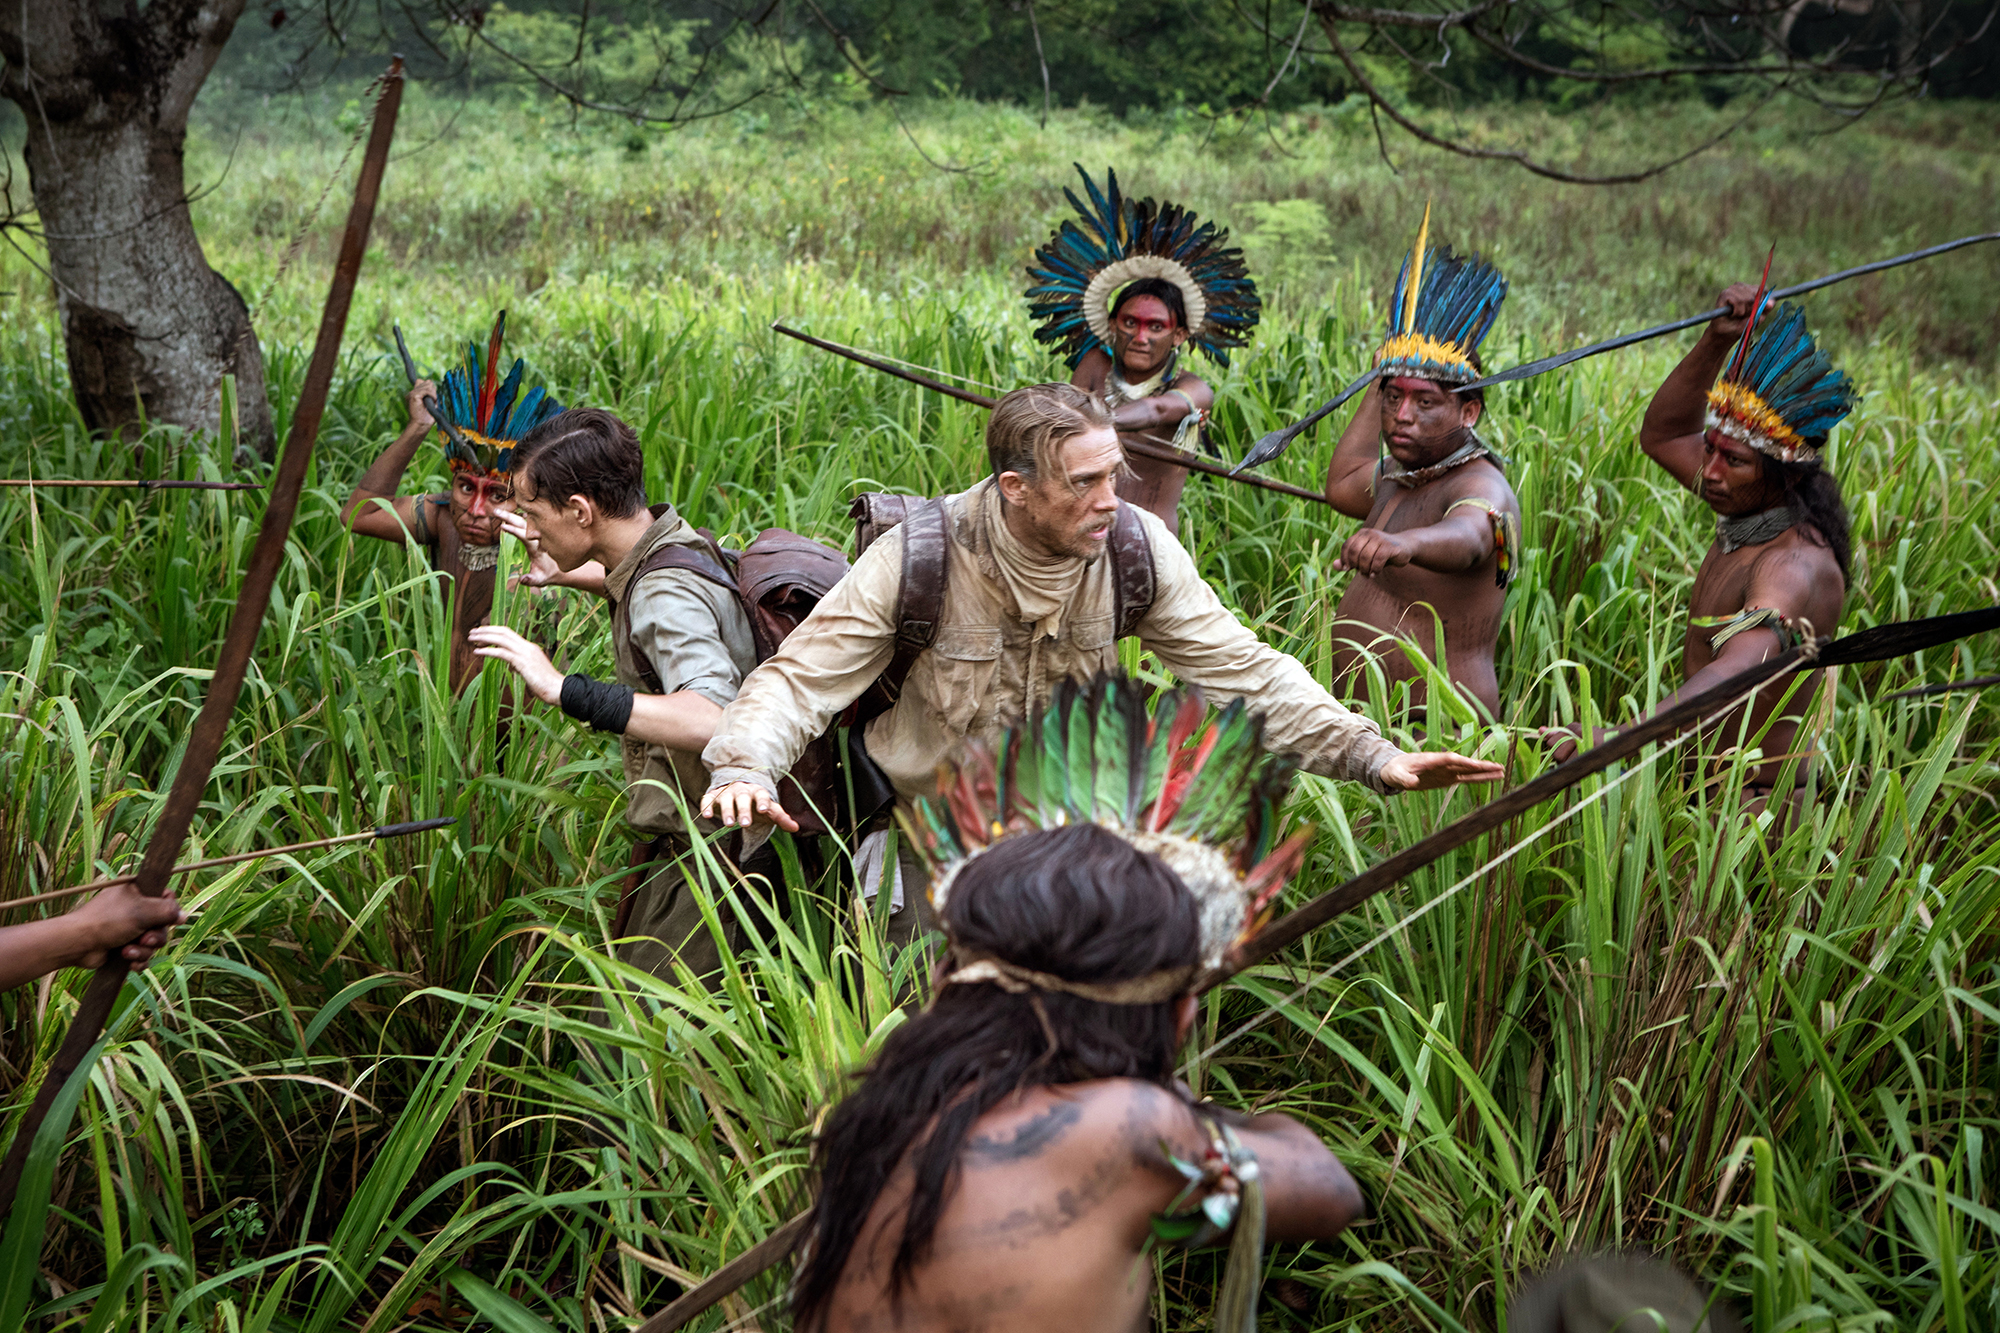 Tom Holland, left, and Charlie Hunnam, right, in The Lost City of Z.